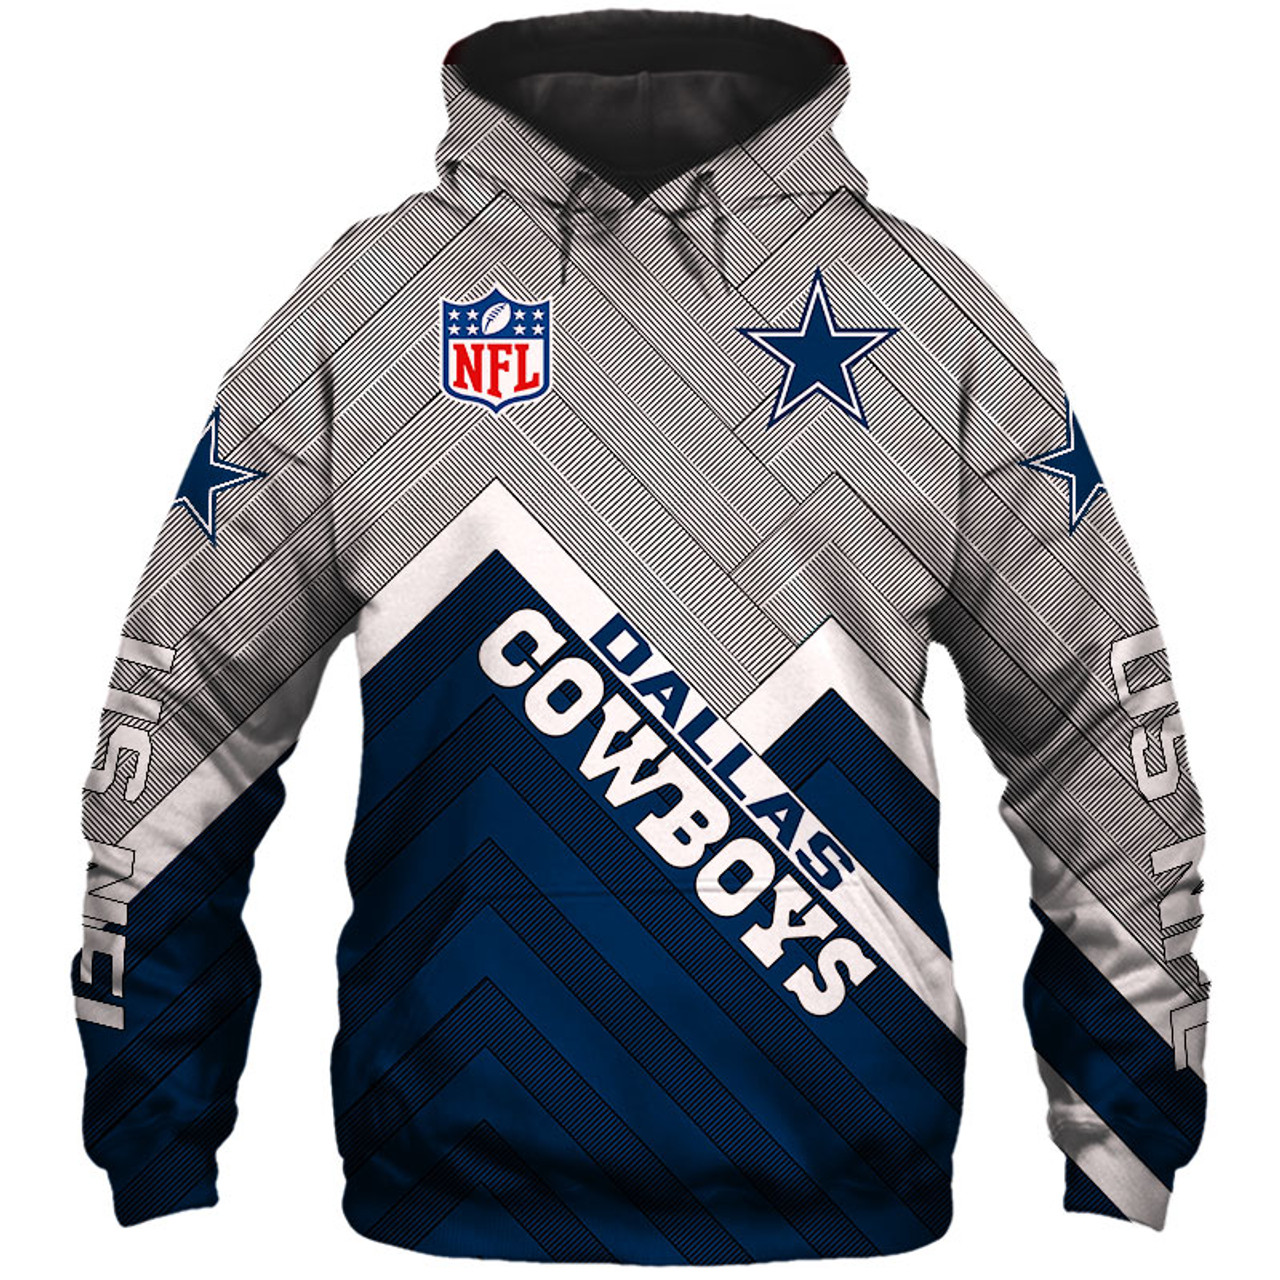 the latest 7de60 e7cd4 **(NEW-OFFICIAL-N.F.L.DALLAS-COWBOYS-PULLOVER-HOODIES/3D-CUSTOM-COWBOYS-LOGOS  & OFFICIAL-COWBOYS-TEAM-COLORS/NICE-3D-GRAPHIC-PRINTED-DOUBLE-SIDED/ALL-...